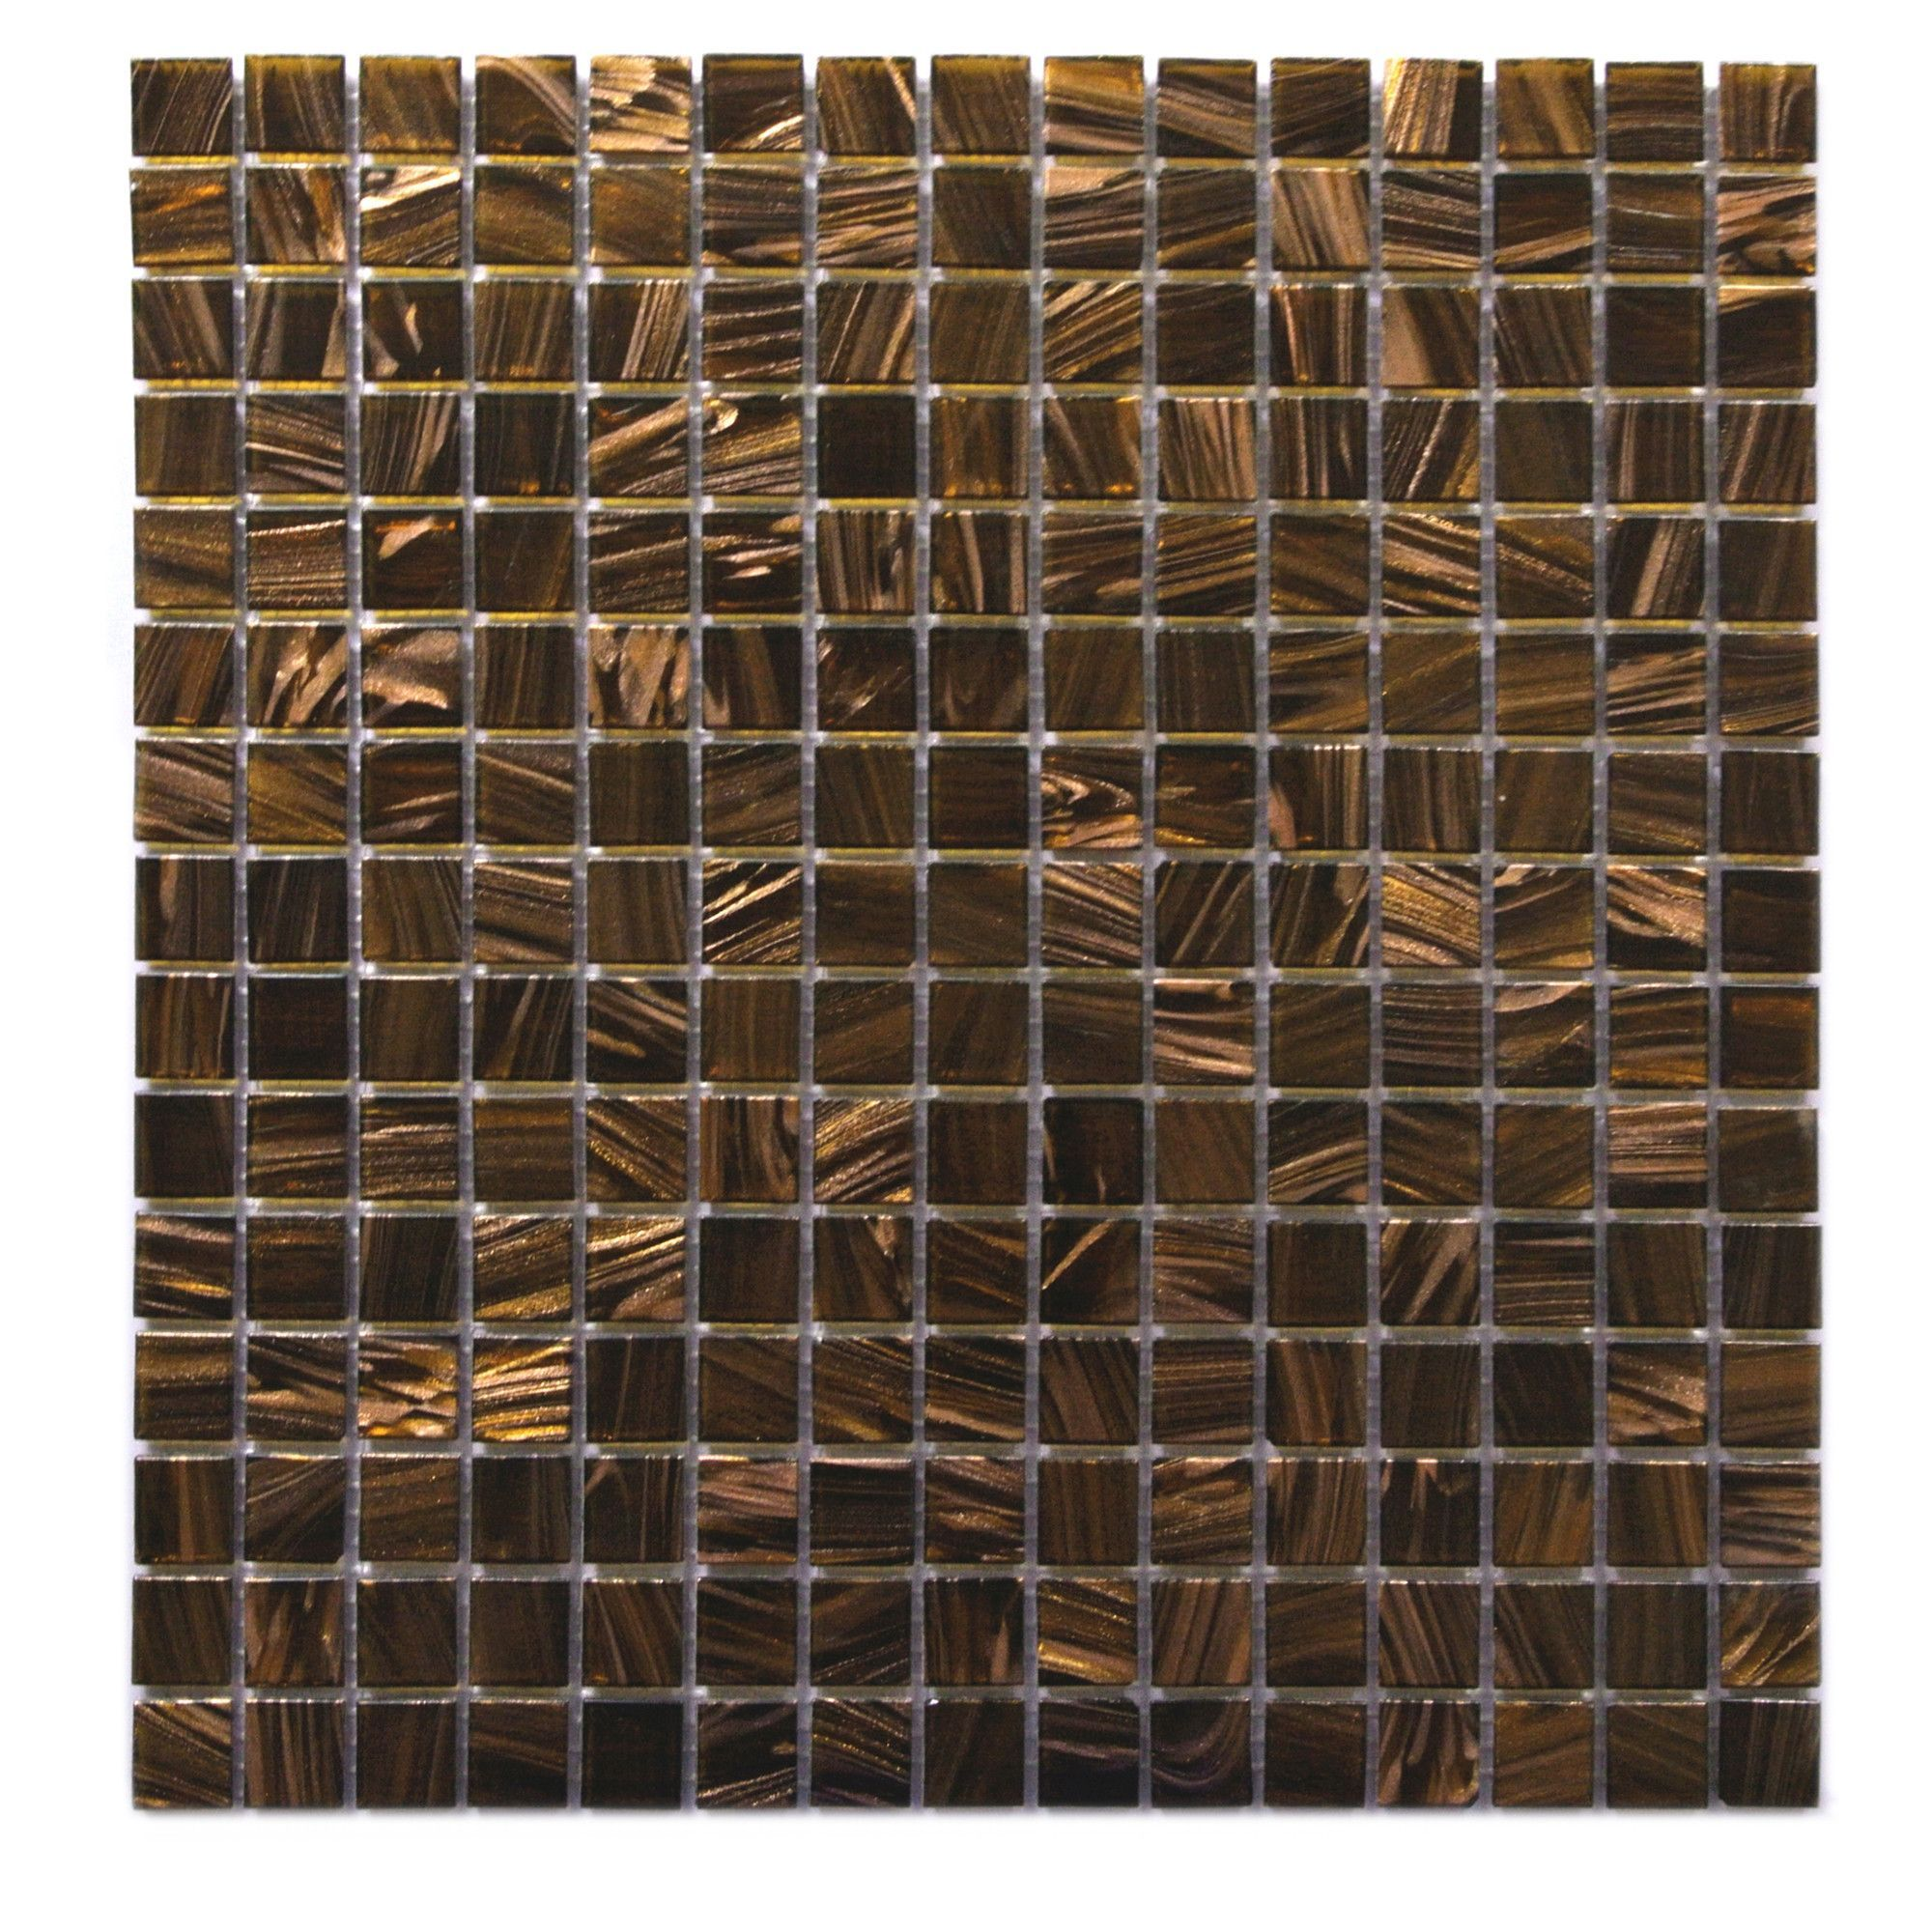 Venus 075 x 075 glass mosaic tile in brown neon mozaic venus 075 x 075 glass mosaic tile in dailygadgetfo Image collections